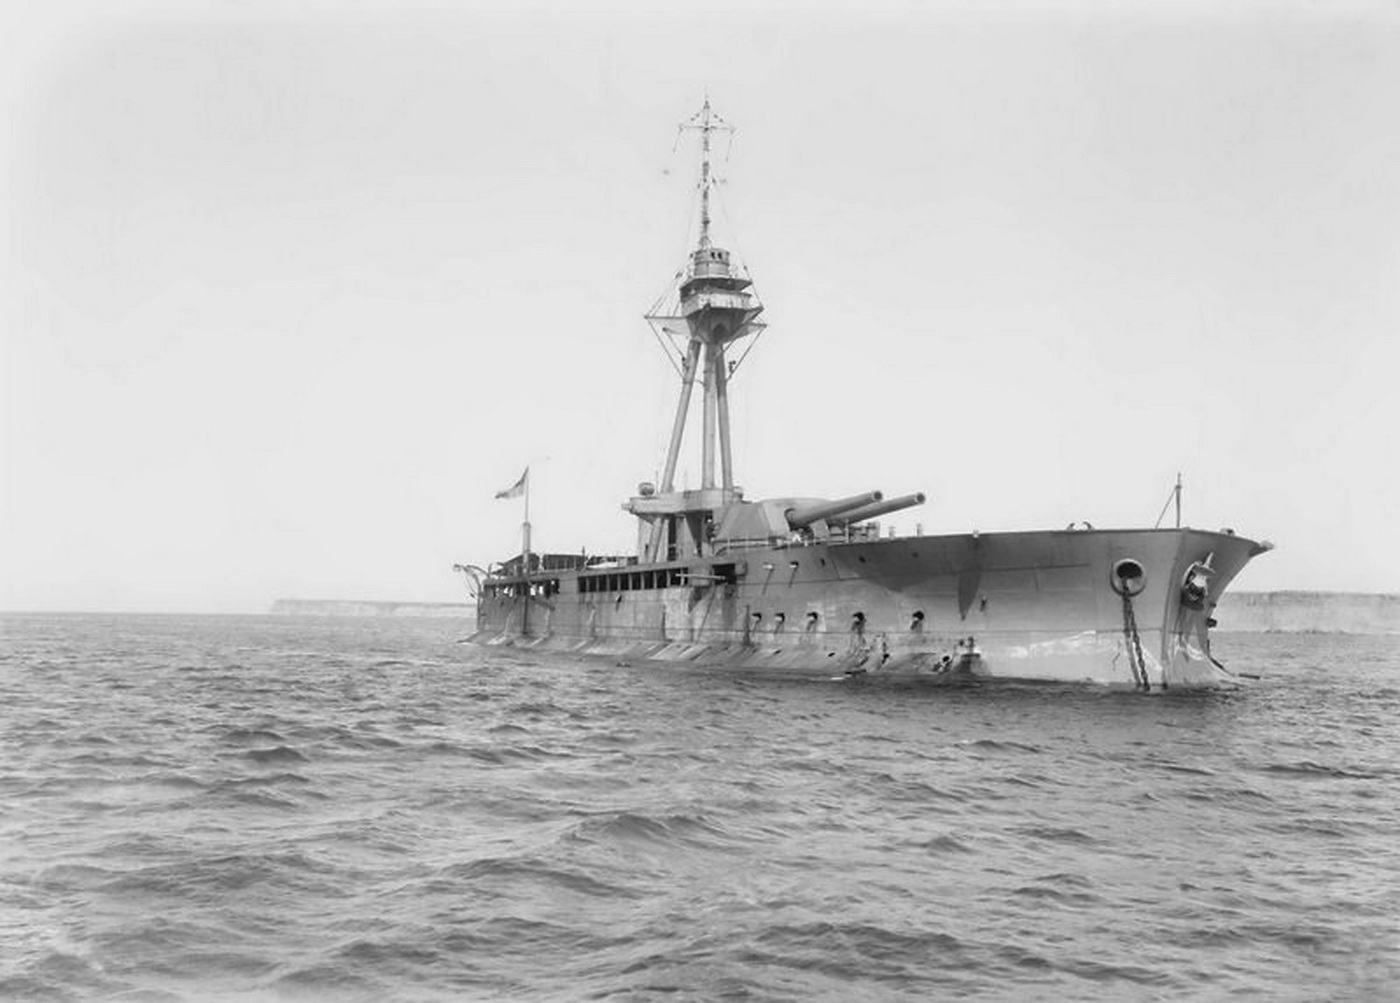 Monitor HMS ABERCROMBIE in 1919, Srzm.jpg